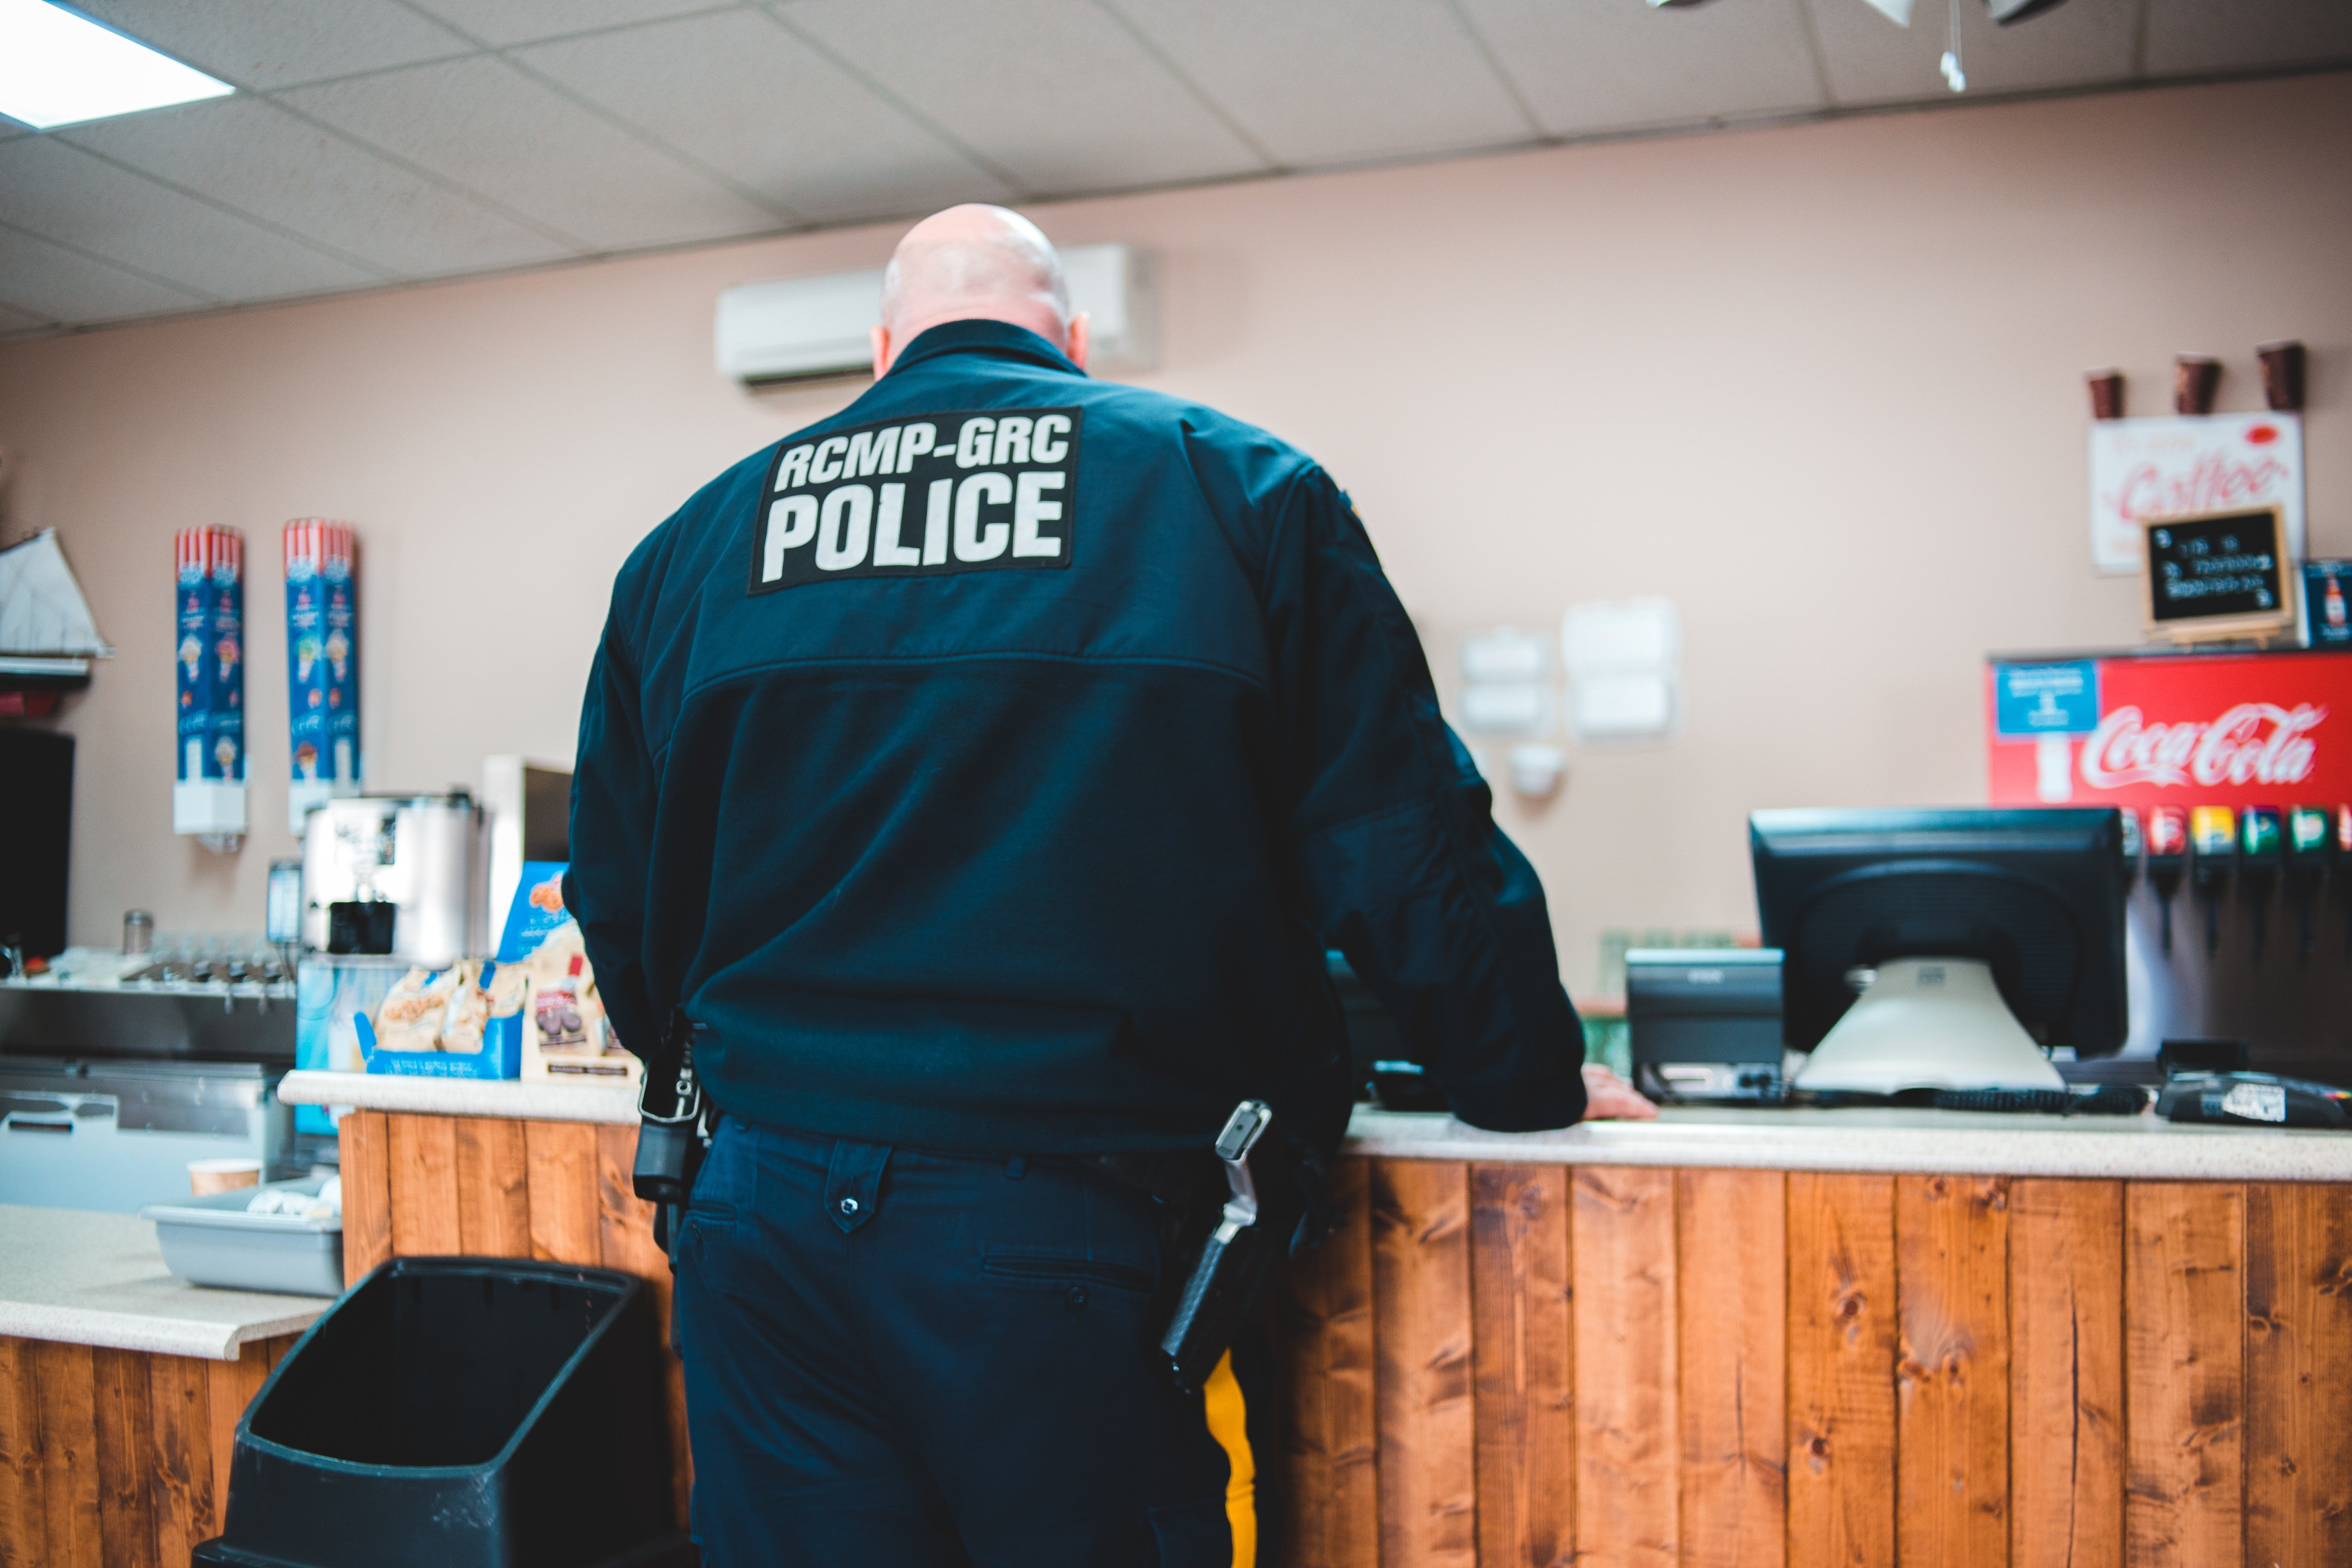 Zeke praised the police officer for his intuitiveness    Source: Pexels